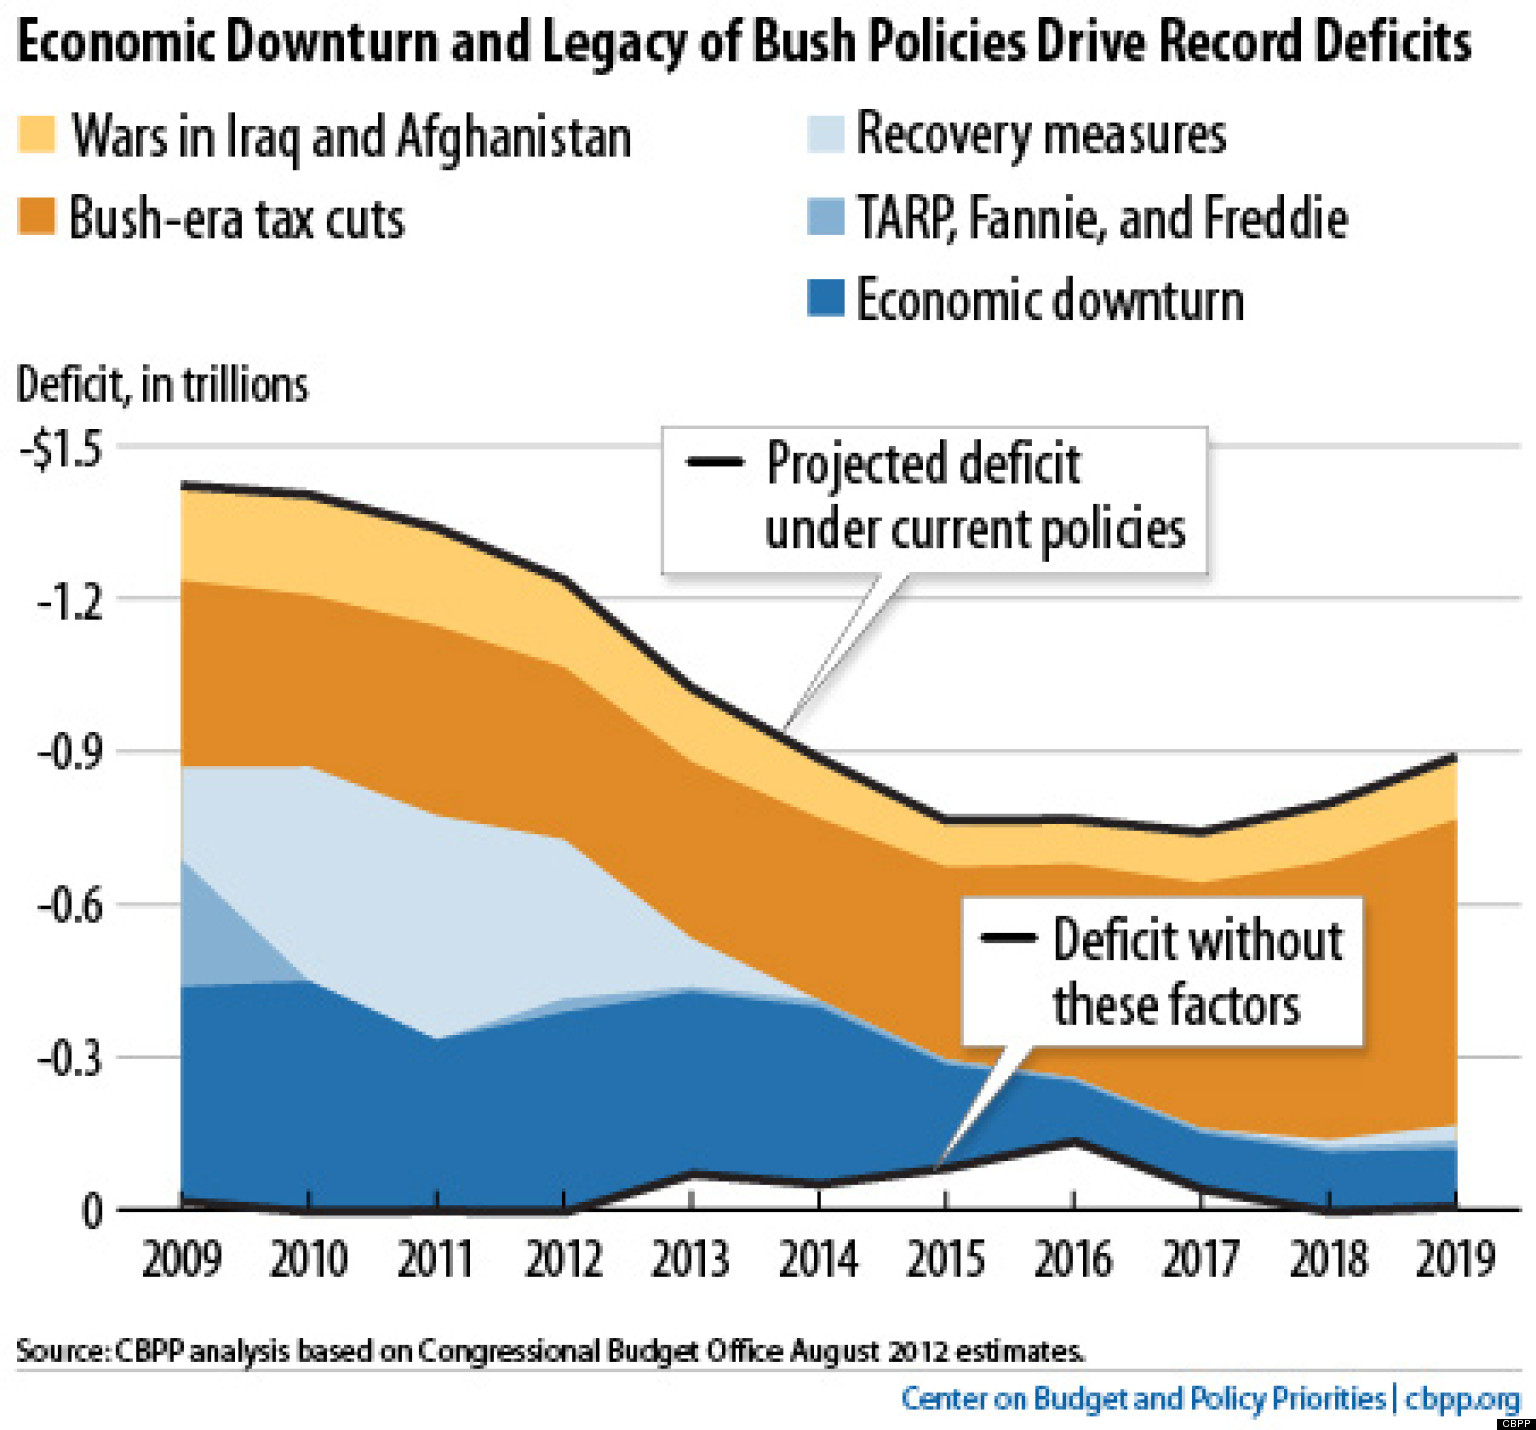 Trump Tax Plan Courts Major Backlash: 7 Ways The Bush Tax Cuts Wrecked The Economy [CHARTS